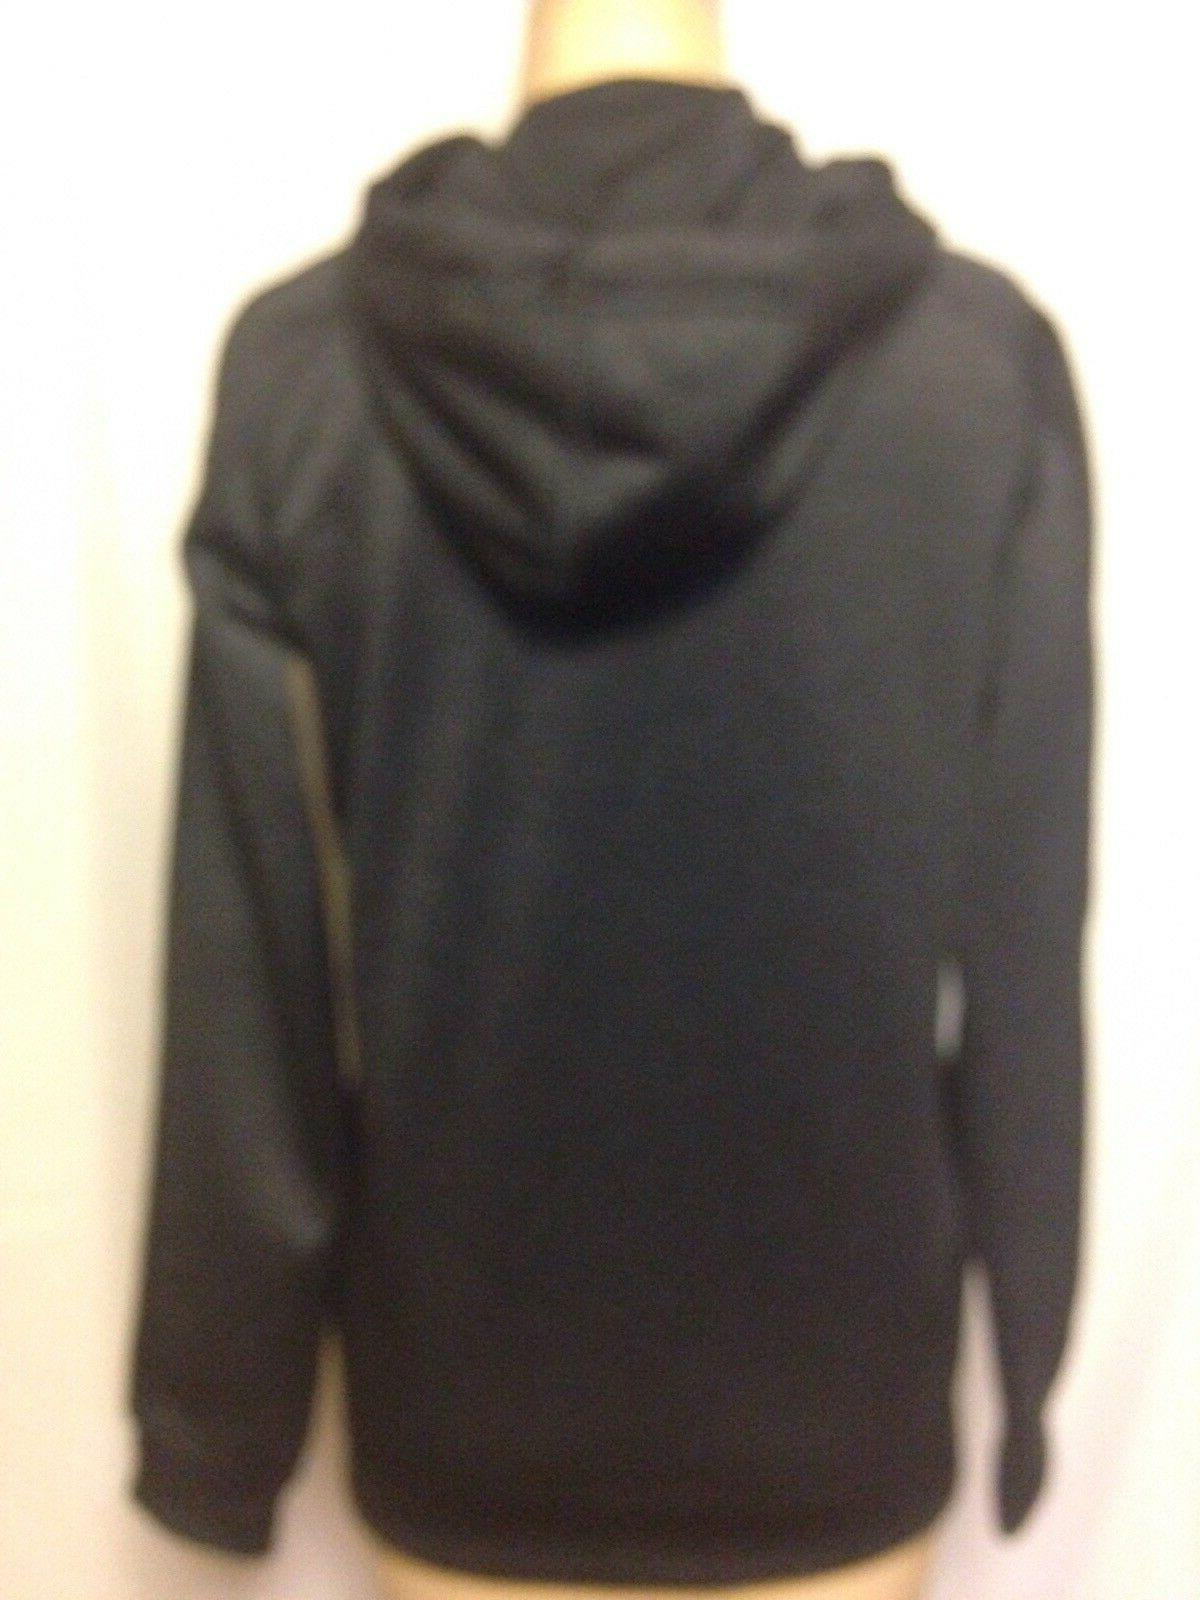 ADIDAS TEAM ISSUE FLEECE FULL AY7652 Black/colored S